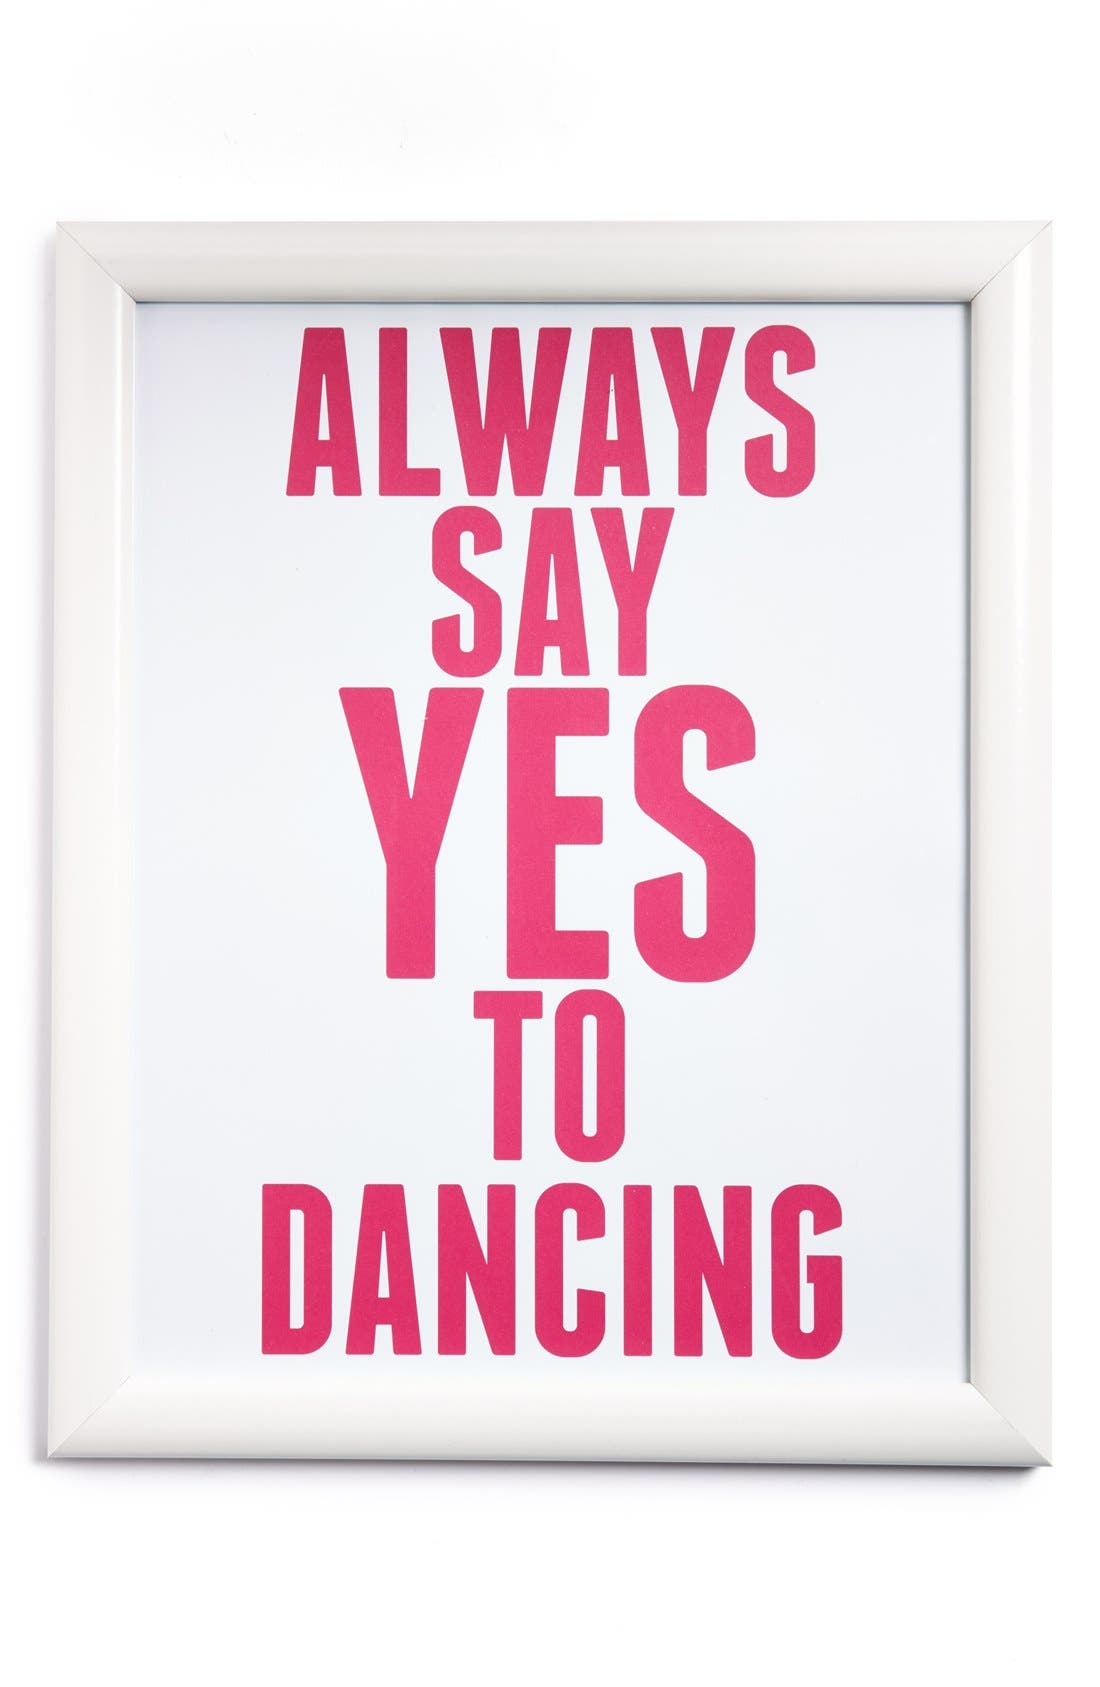 Alternate Image 1 Selected - Canton Box Co. 'Always Say Yes To Dancing' Wall Art